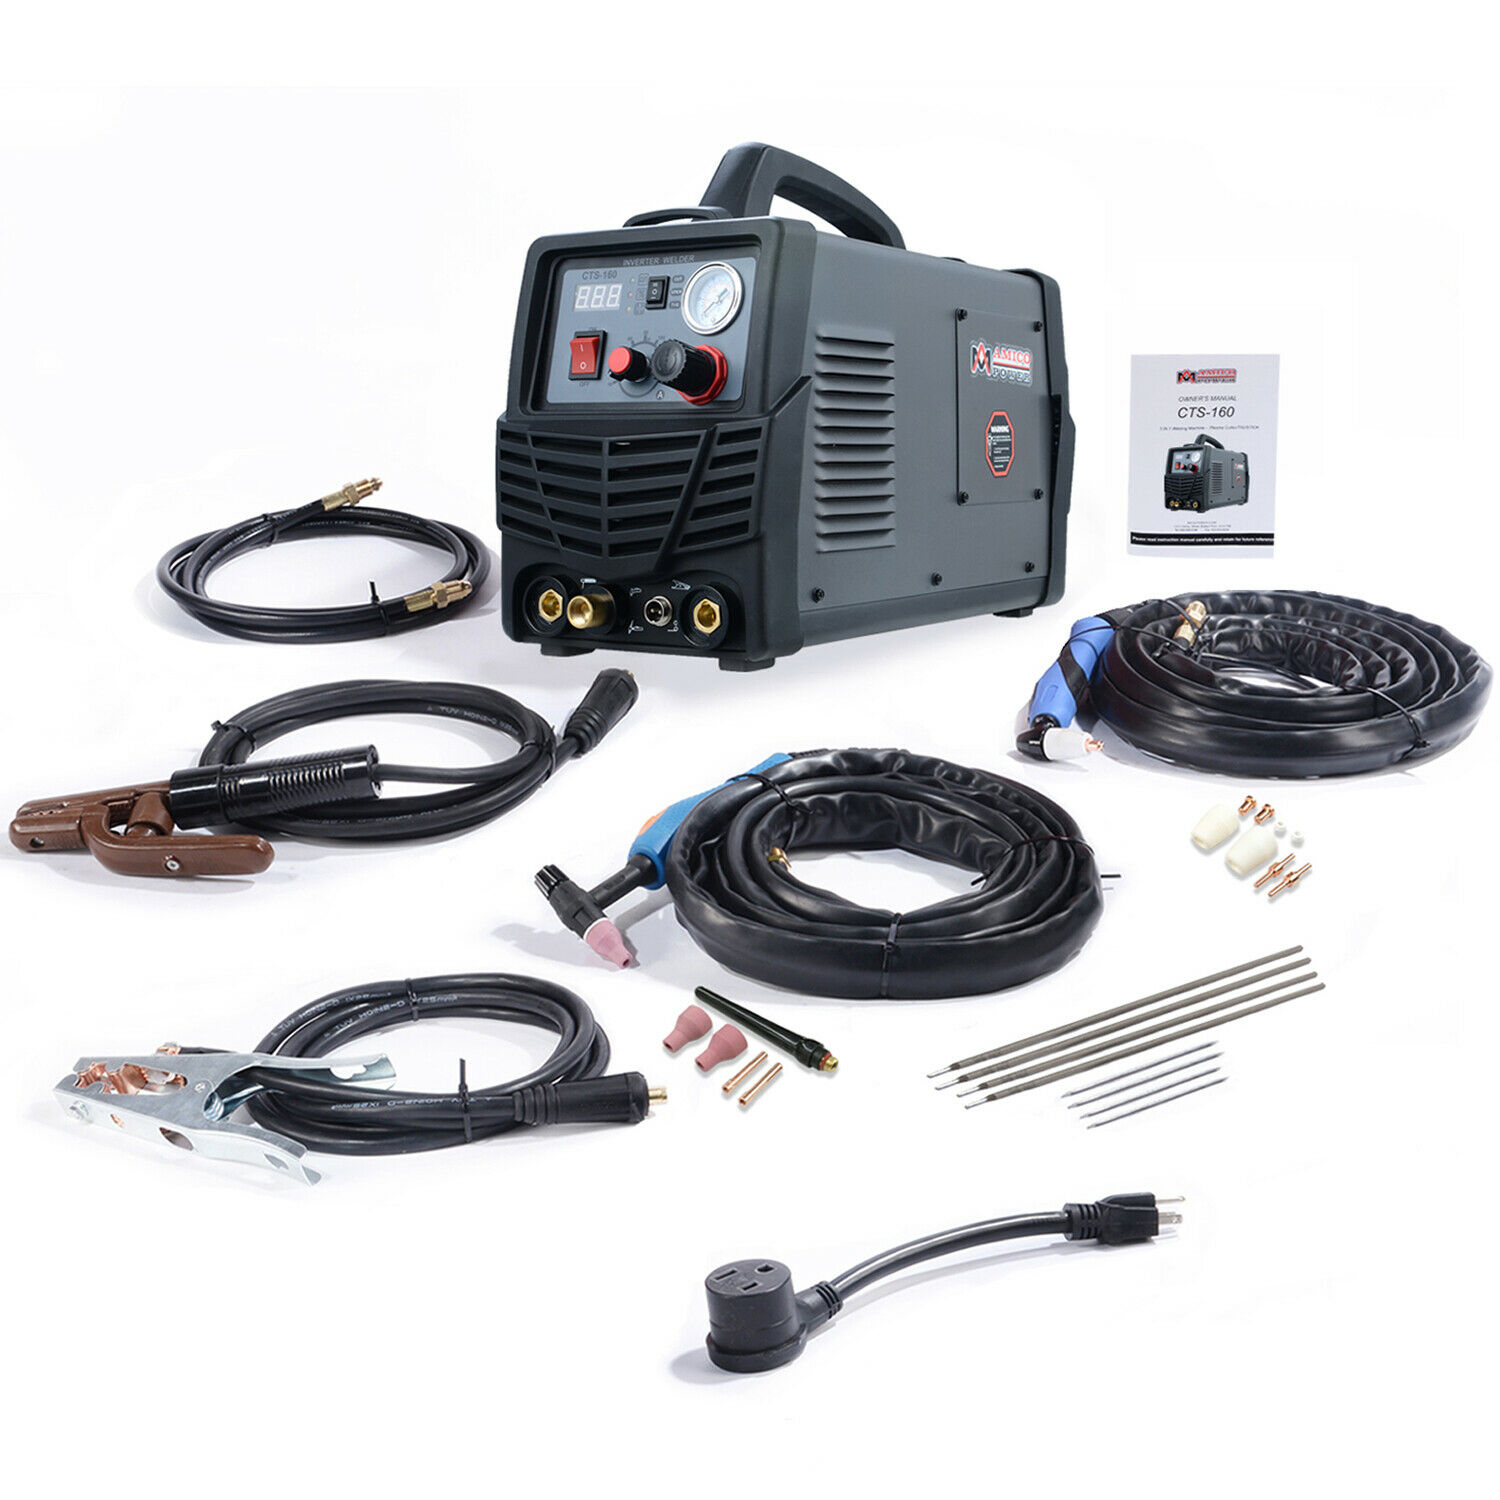 CTS-160, 30A Plasma Cutter, 160A TIG Stick Arc DC Welder, 3-IN-1 Combo Welding. Buy it now for 449.00